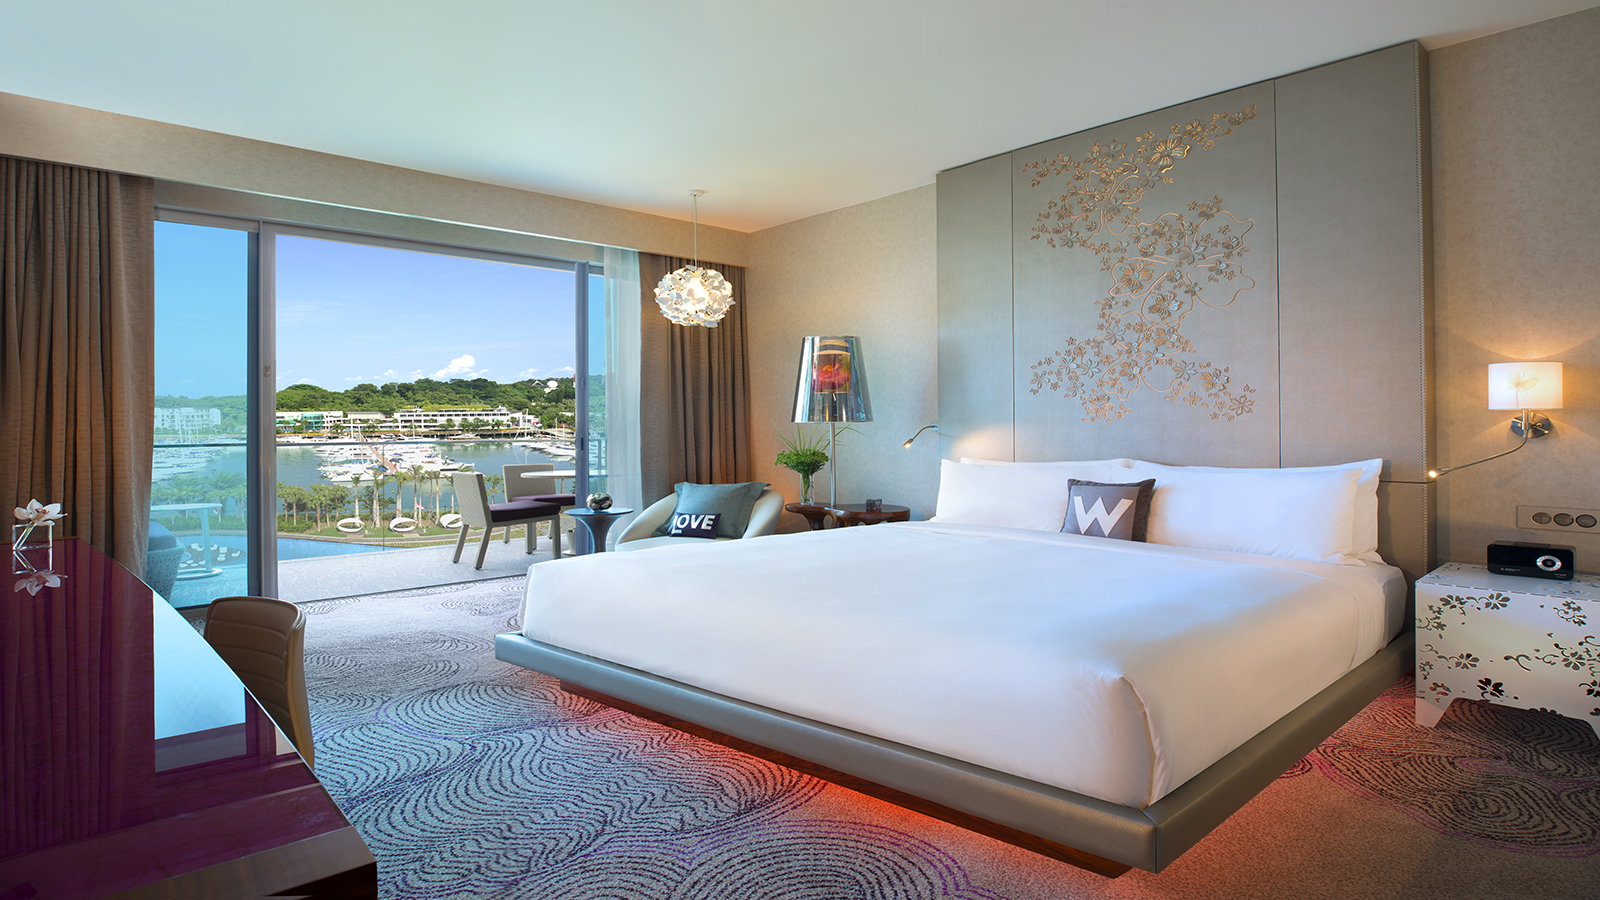 Sentosa luxury hotel spectacular away room at singapore for W hotel in room dining menu singapore